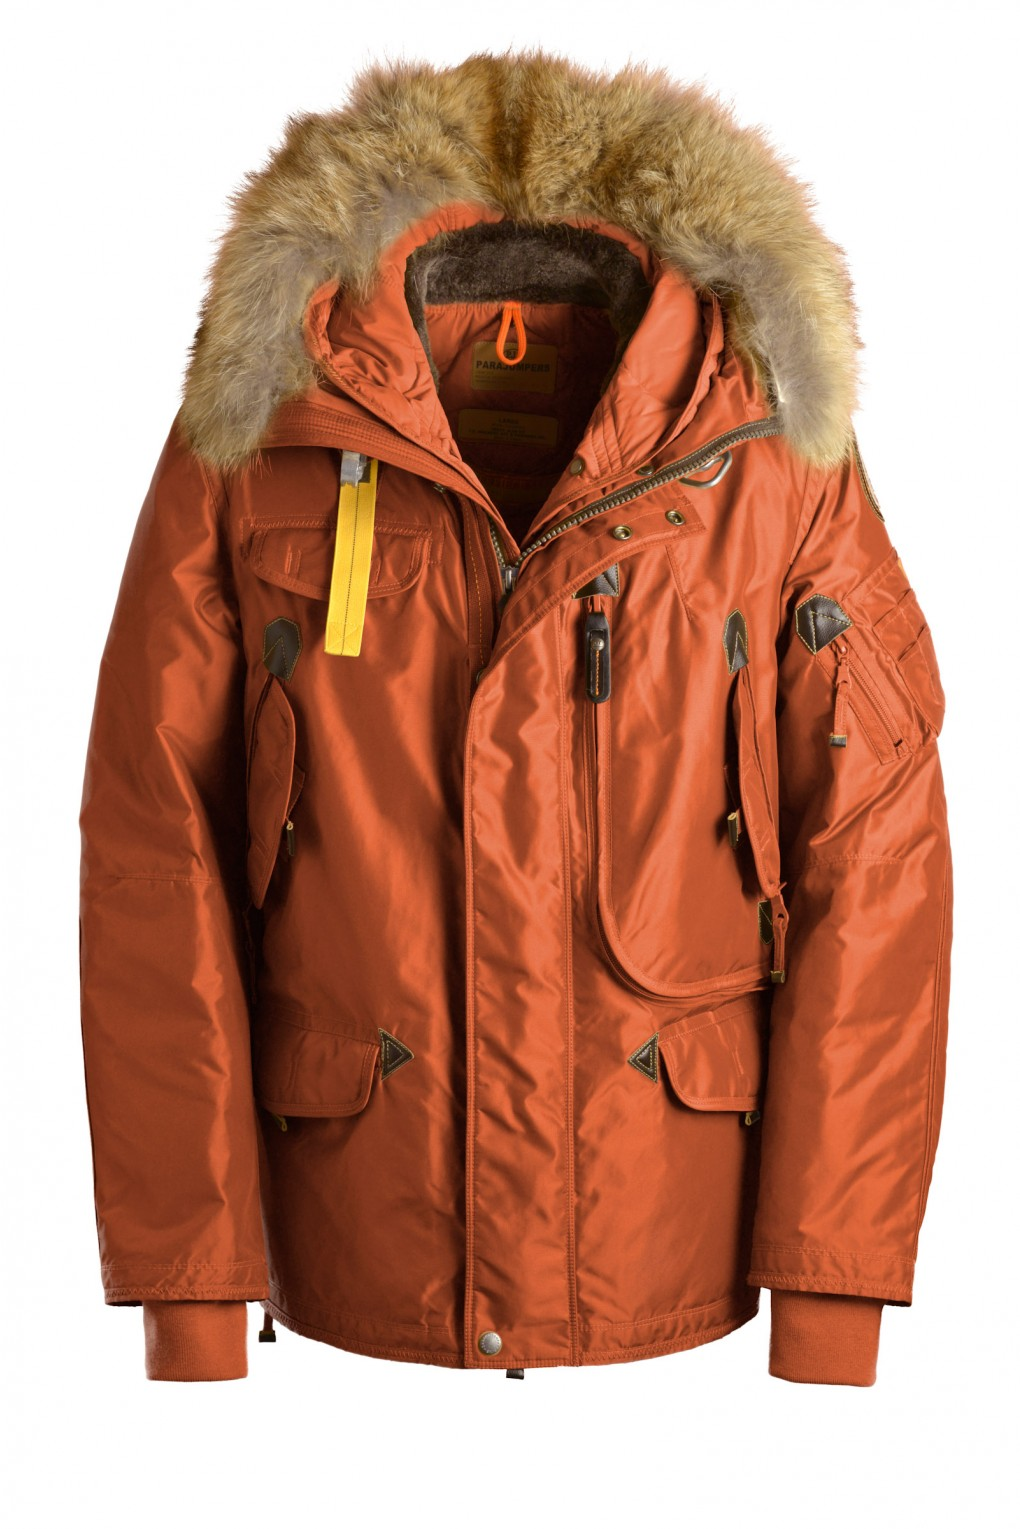 parajumpers RIGHT HAND man outerwear Rust